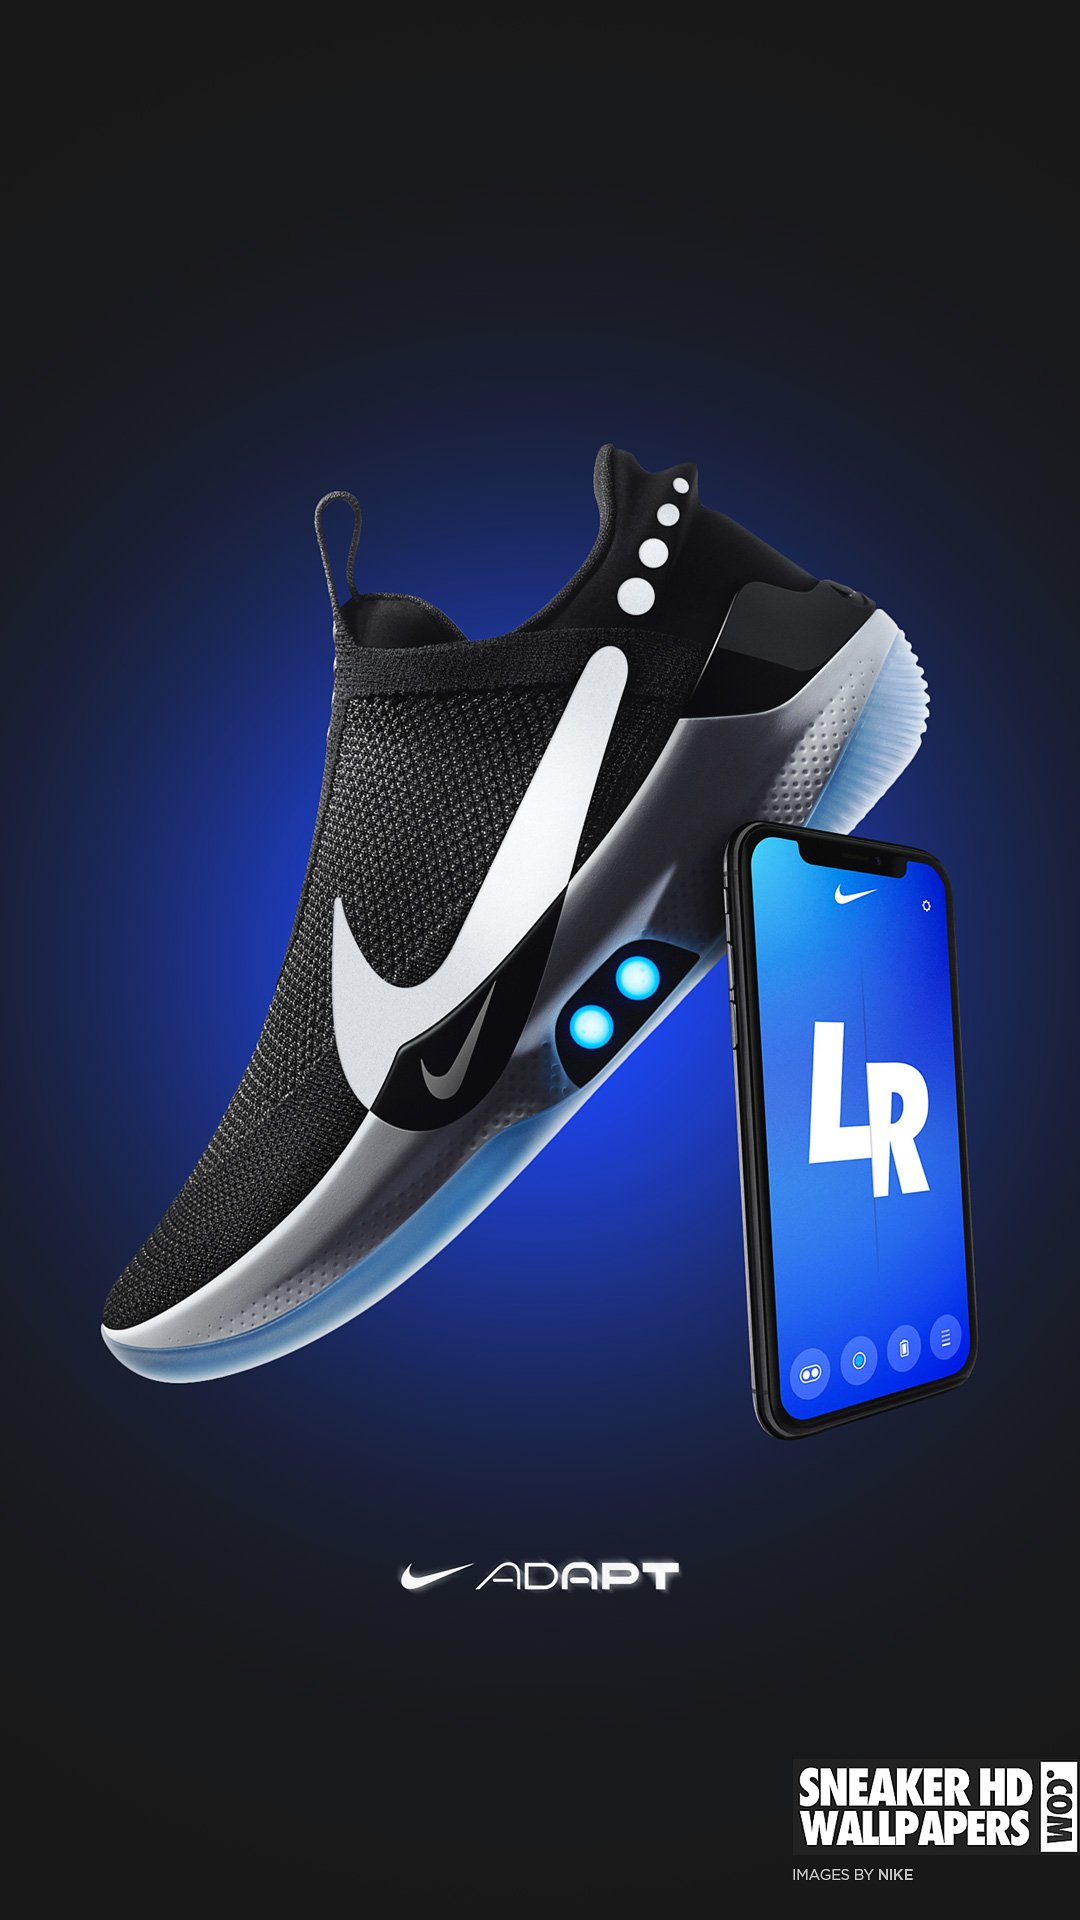 SneakerHDWallpaperscom Your favorite sneakers in HD and mobile 1080x1920